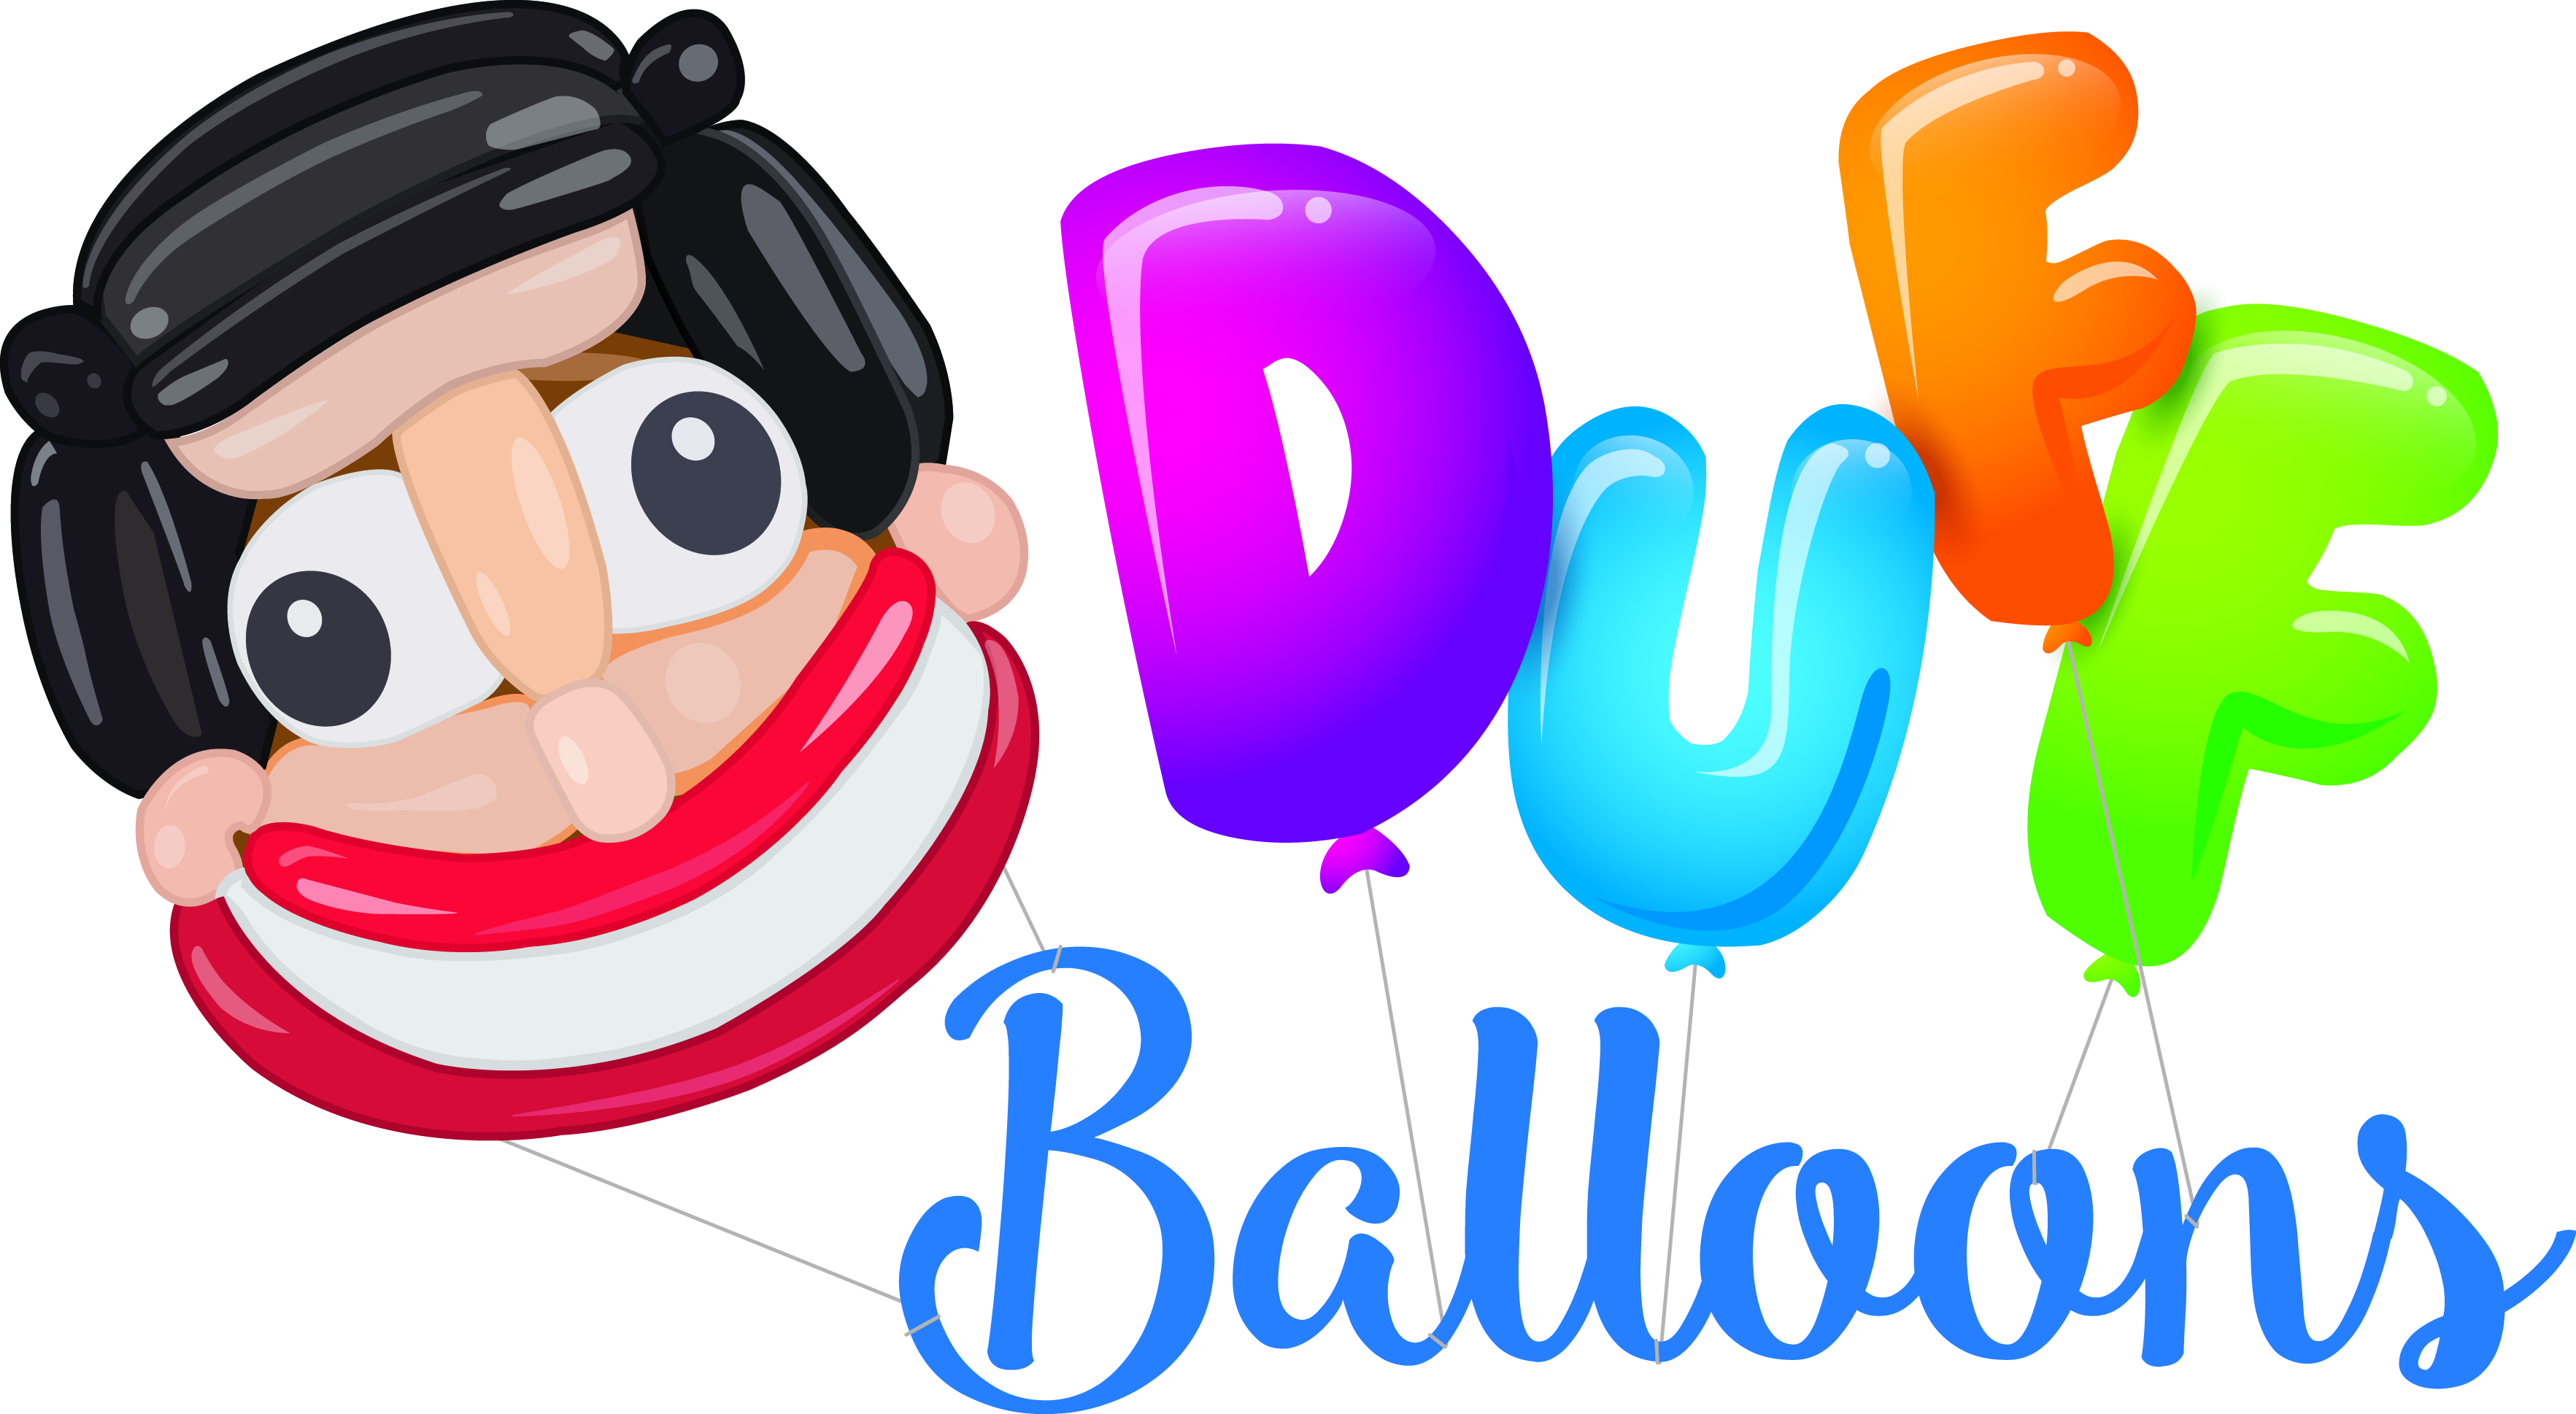 Business Profile - Duff Balloons